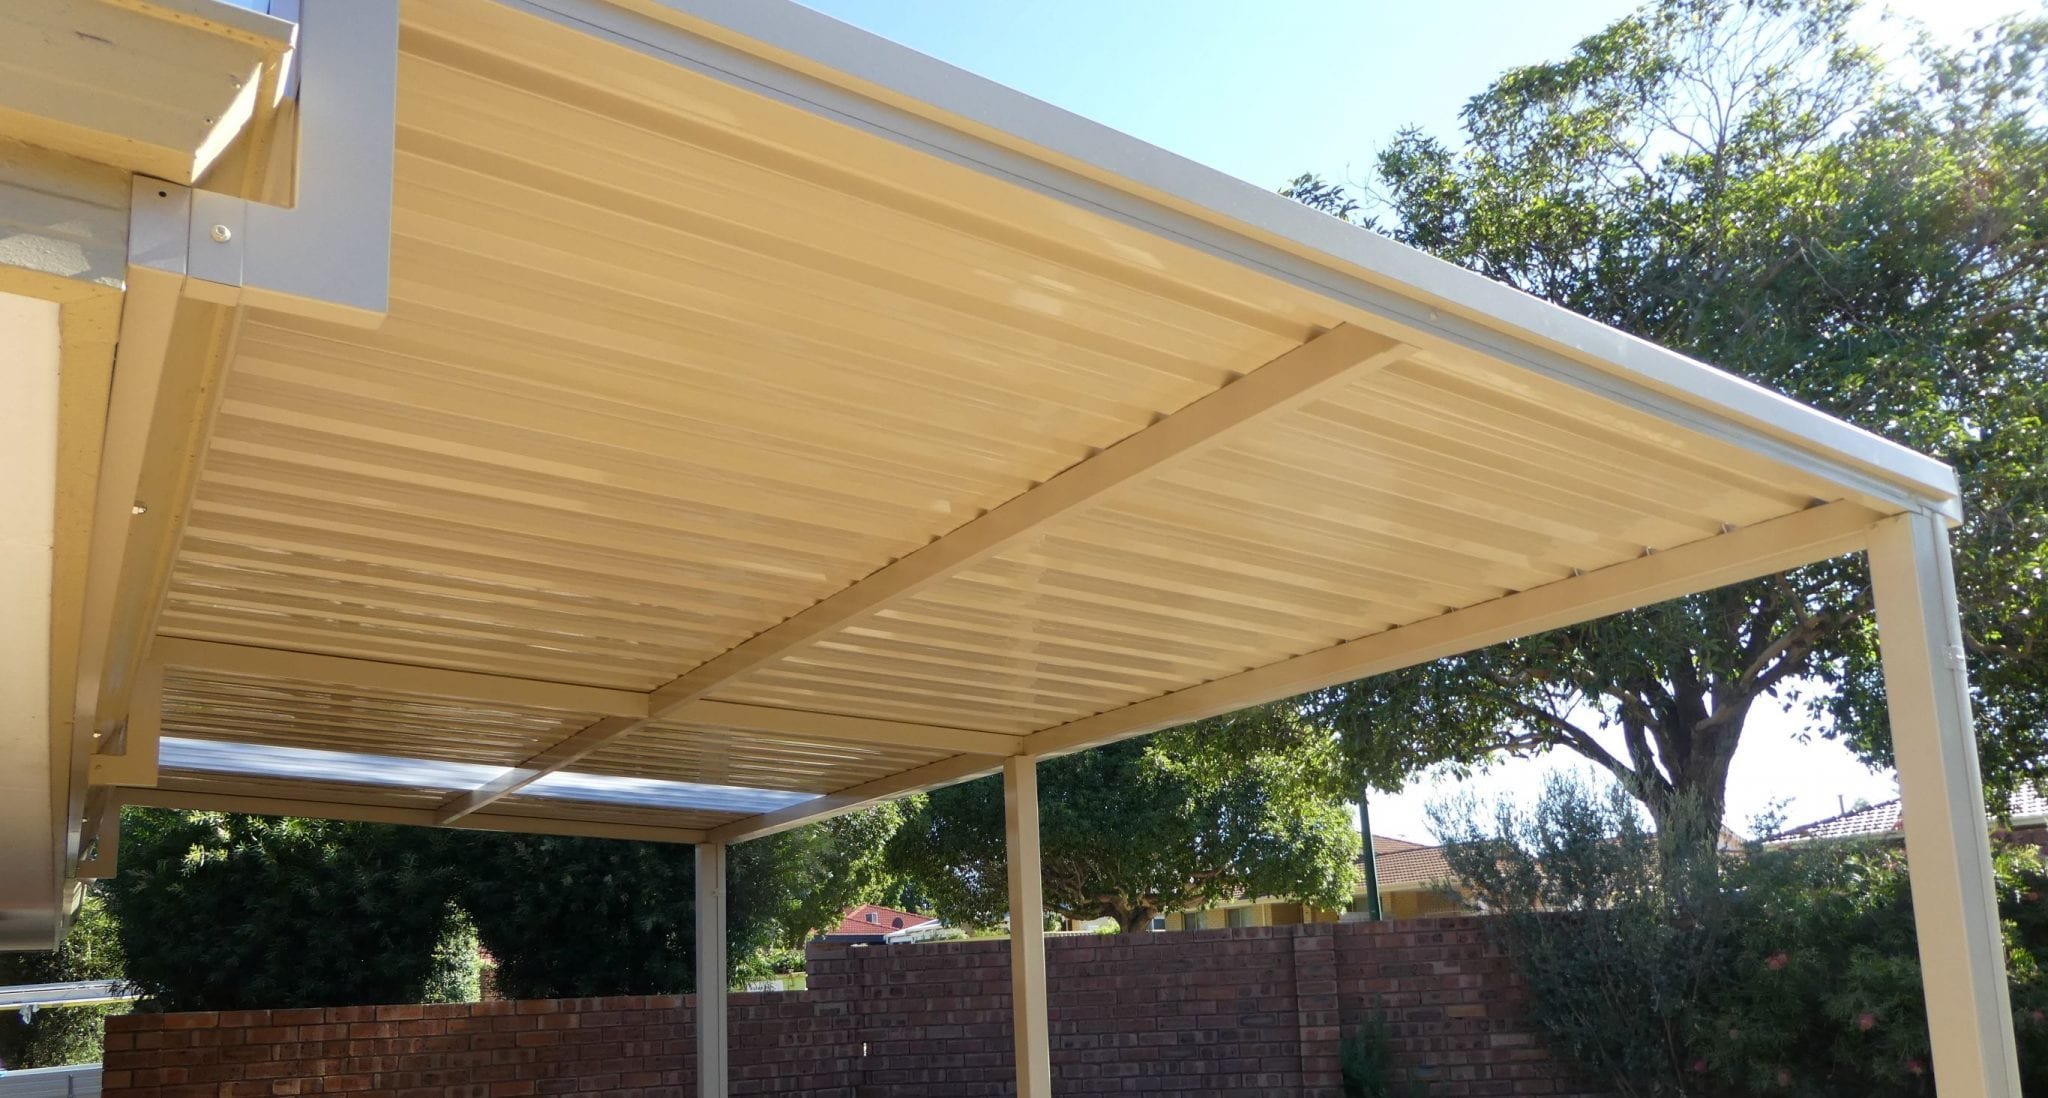 Flat Roof Patios Perth Aussie Patio Designs